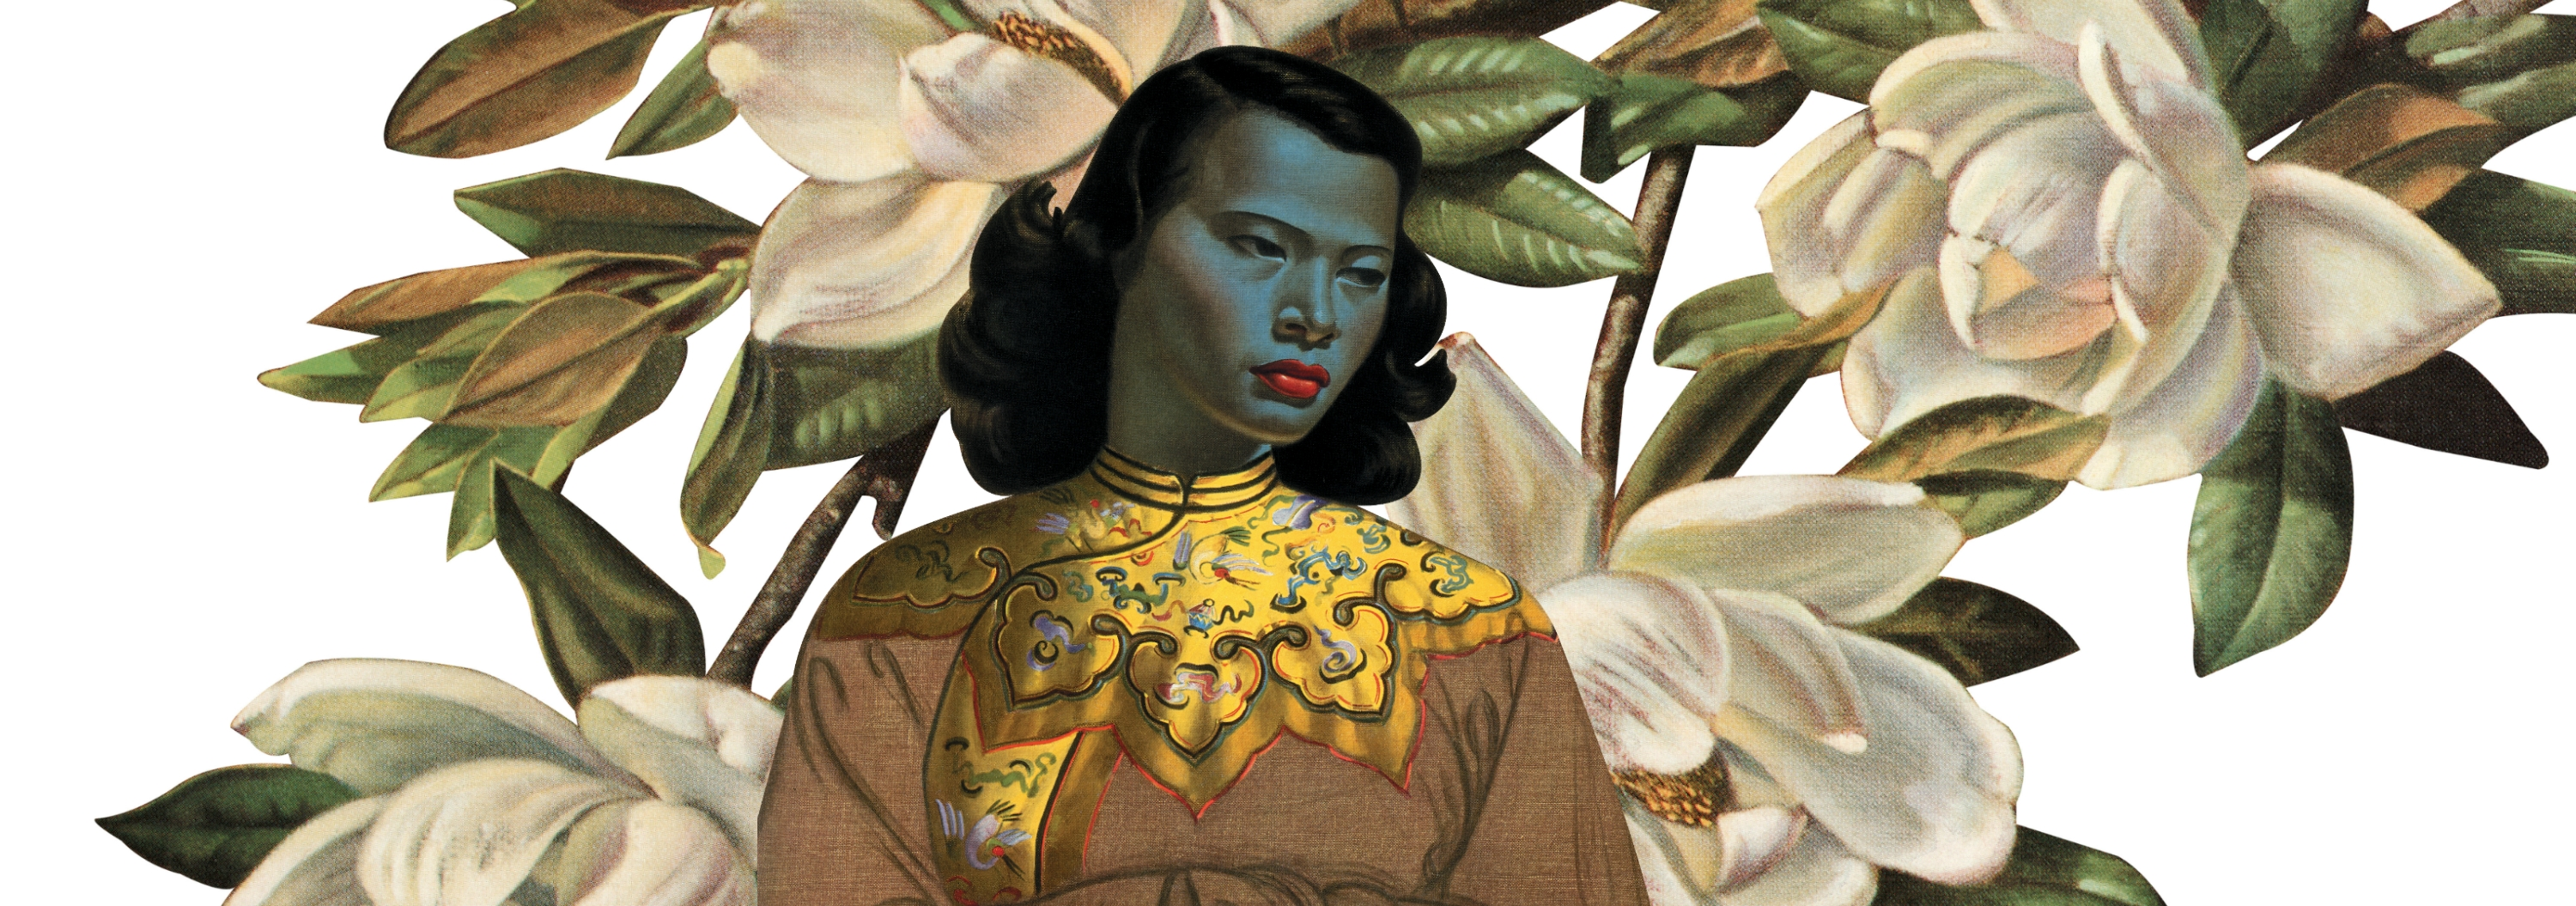 Tretchikoff Lifestyle - New Artwork combining Chinese Girl and Magnolias